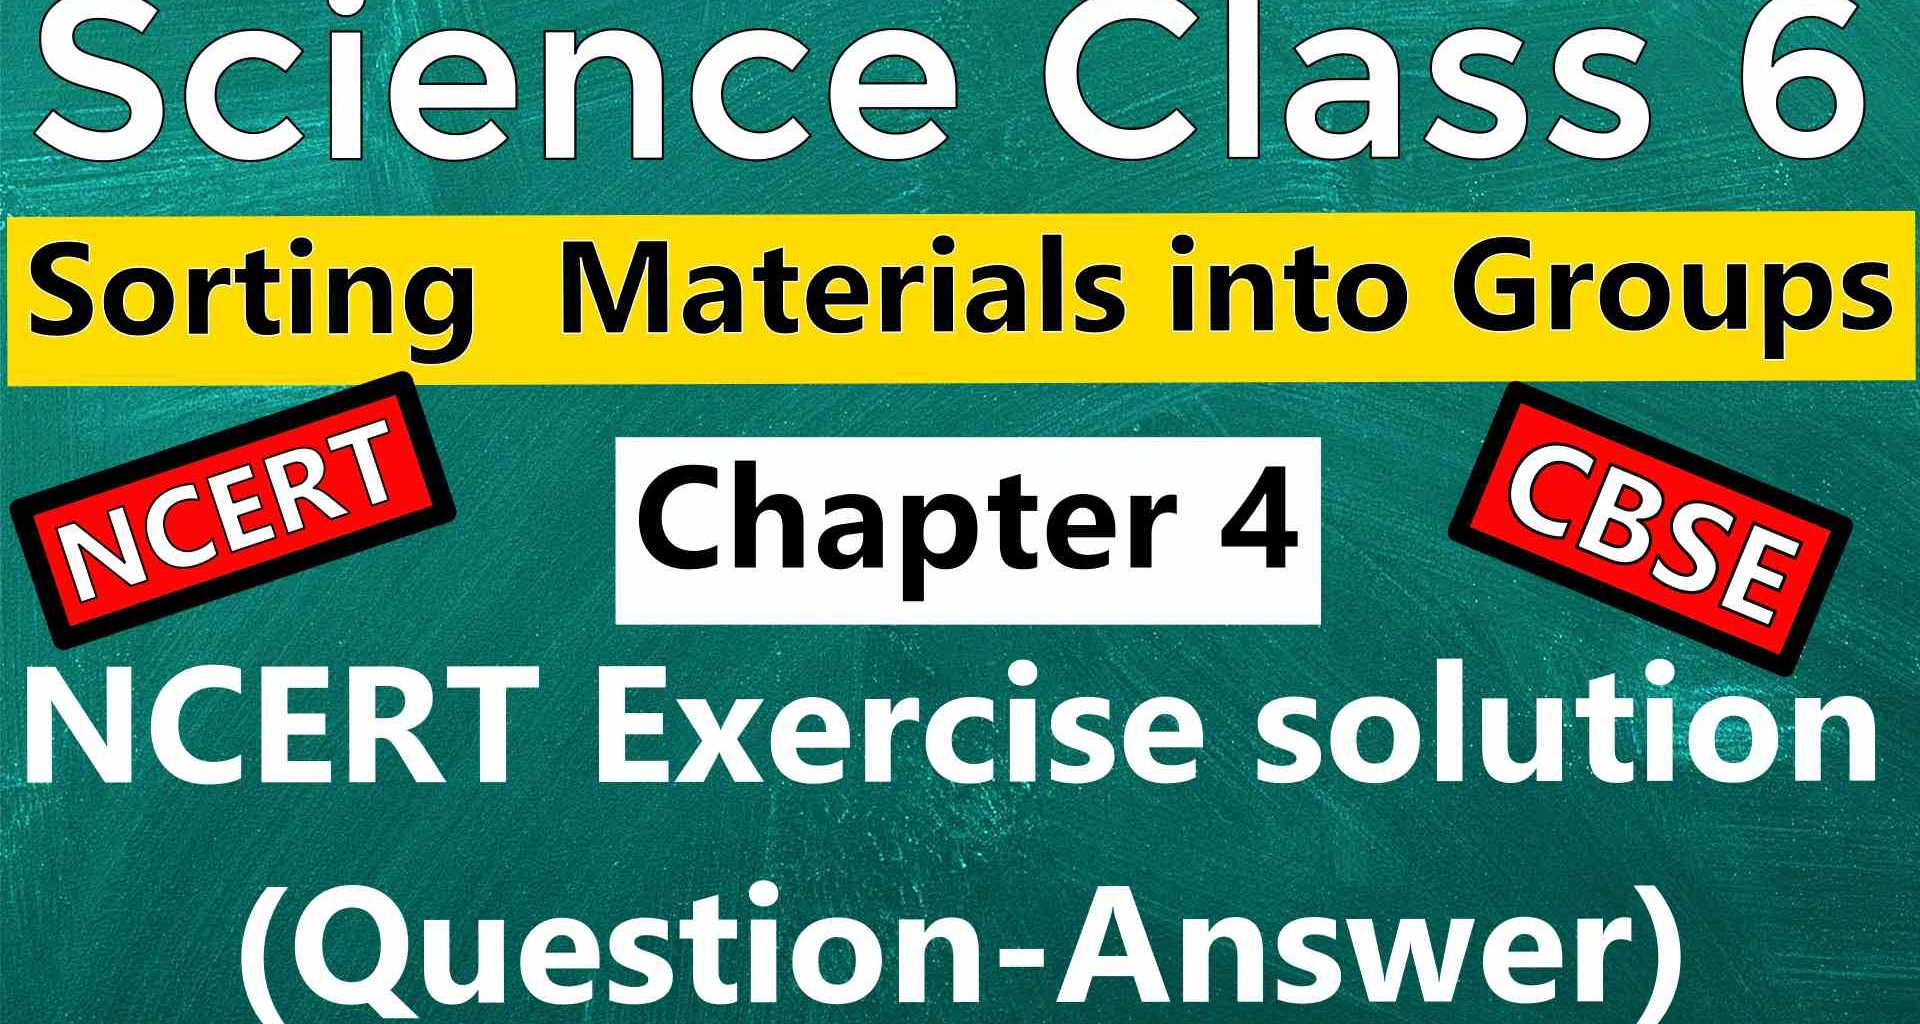 Science Class 6 -Chapter 4– Sorting Materials into Groups- NCERT Exercise solution (Question-Answer)